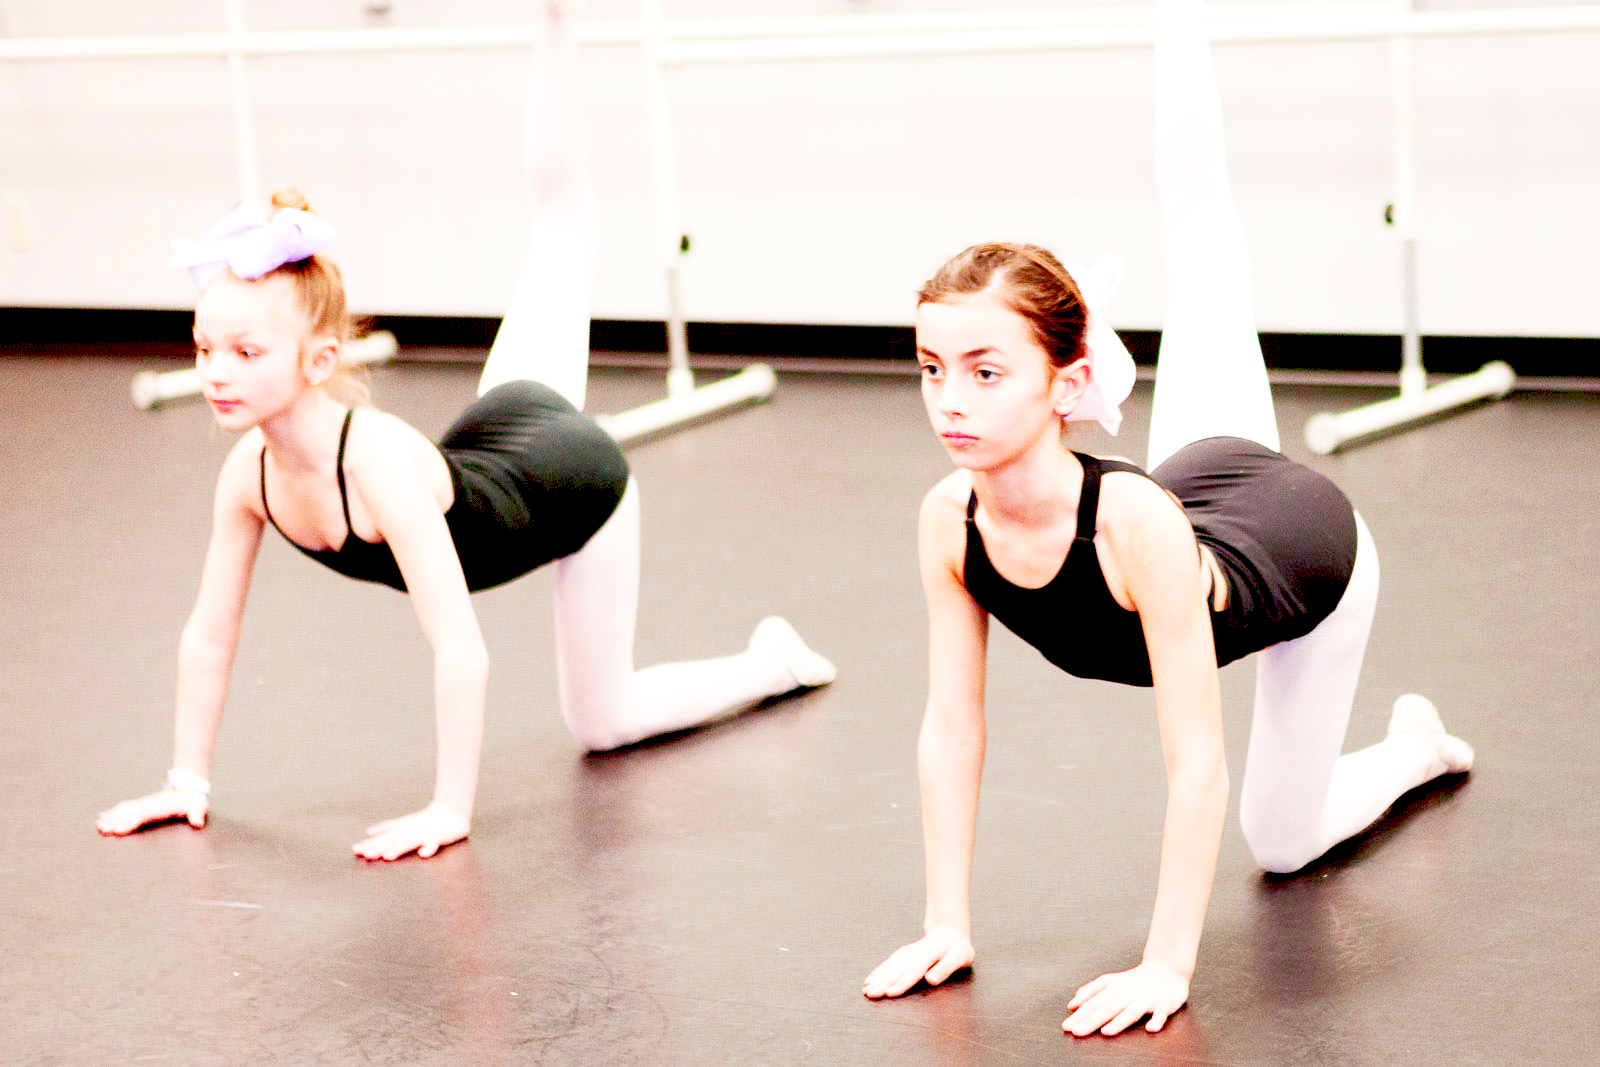 Skills & Drills - June 10th - June 28thThursdays 6:45 to 7:30pmJuly 8th - July 26Thursdays 6:45 to 7:30pmDancers will learn and work to refine pirouette turns and various leaps in this fast paced class!Price $41